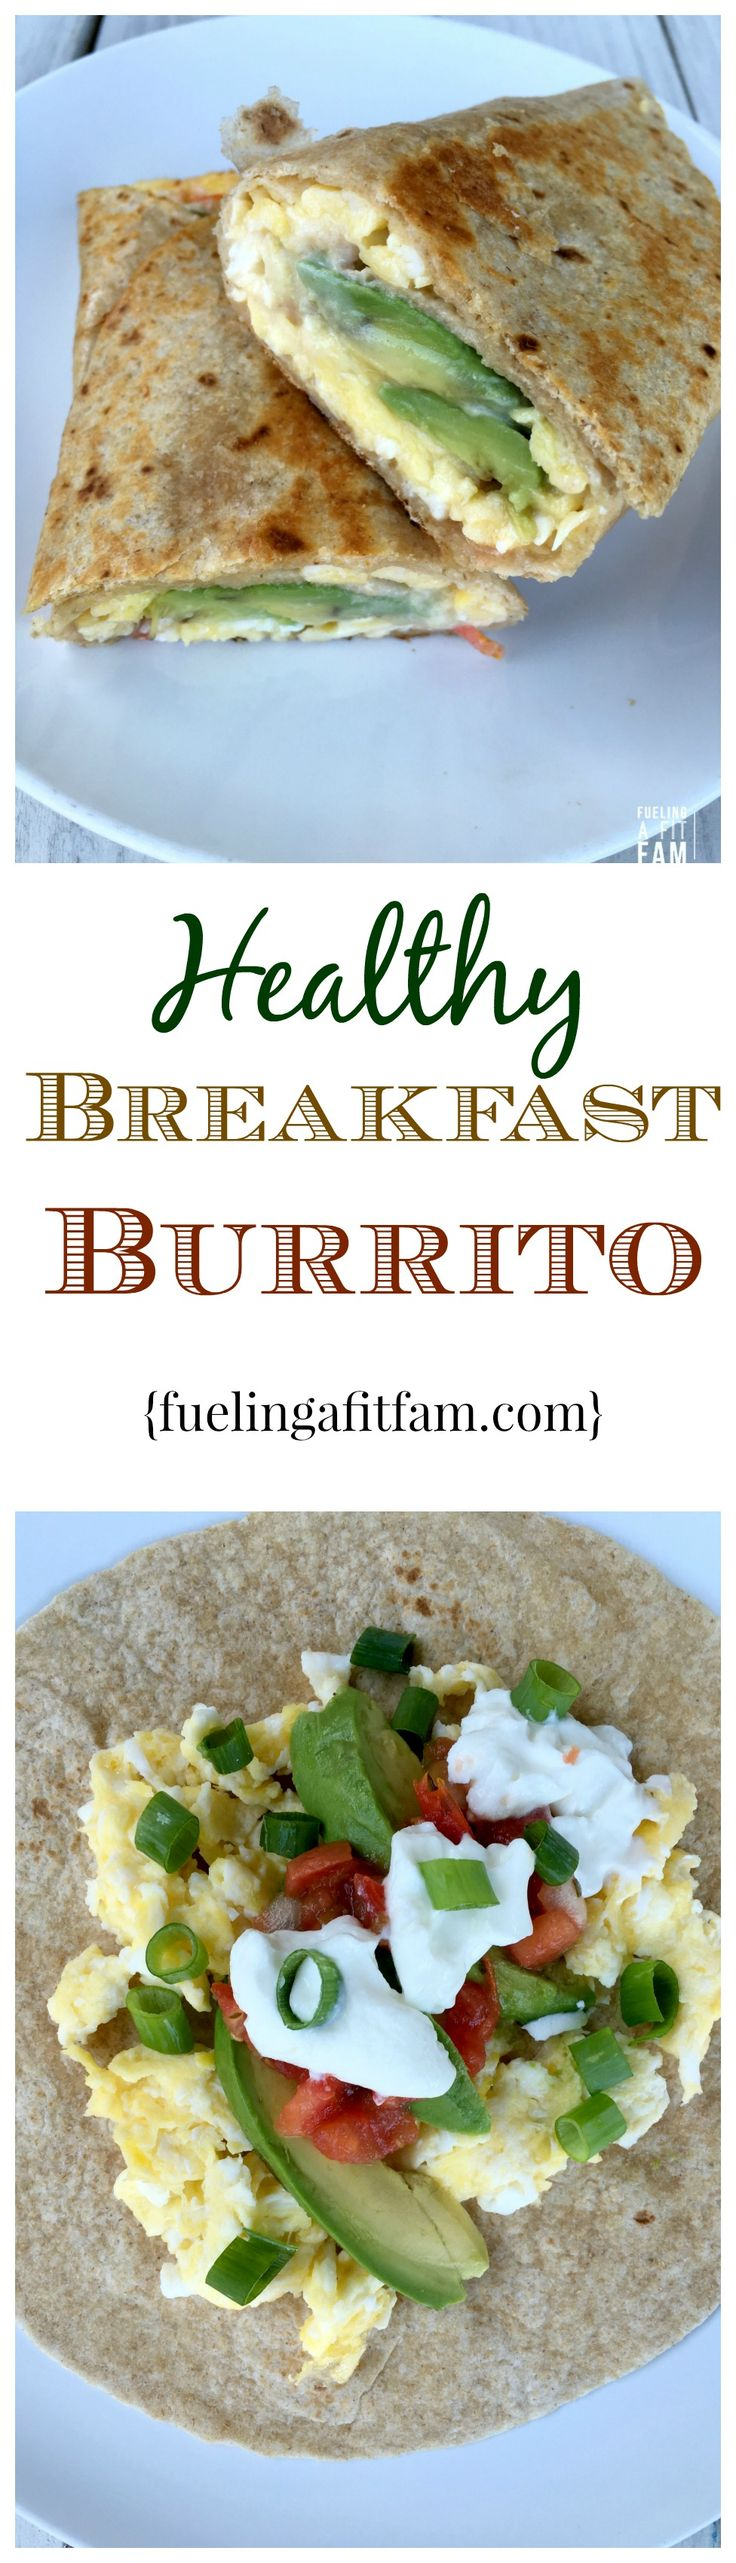 This healthy breakfast burrito is super easy to put together, is a perfect post workout meal and will fill you up!